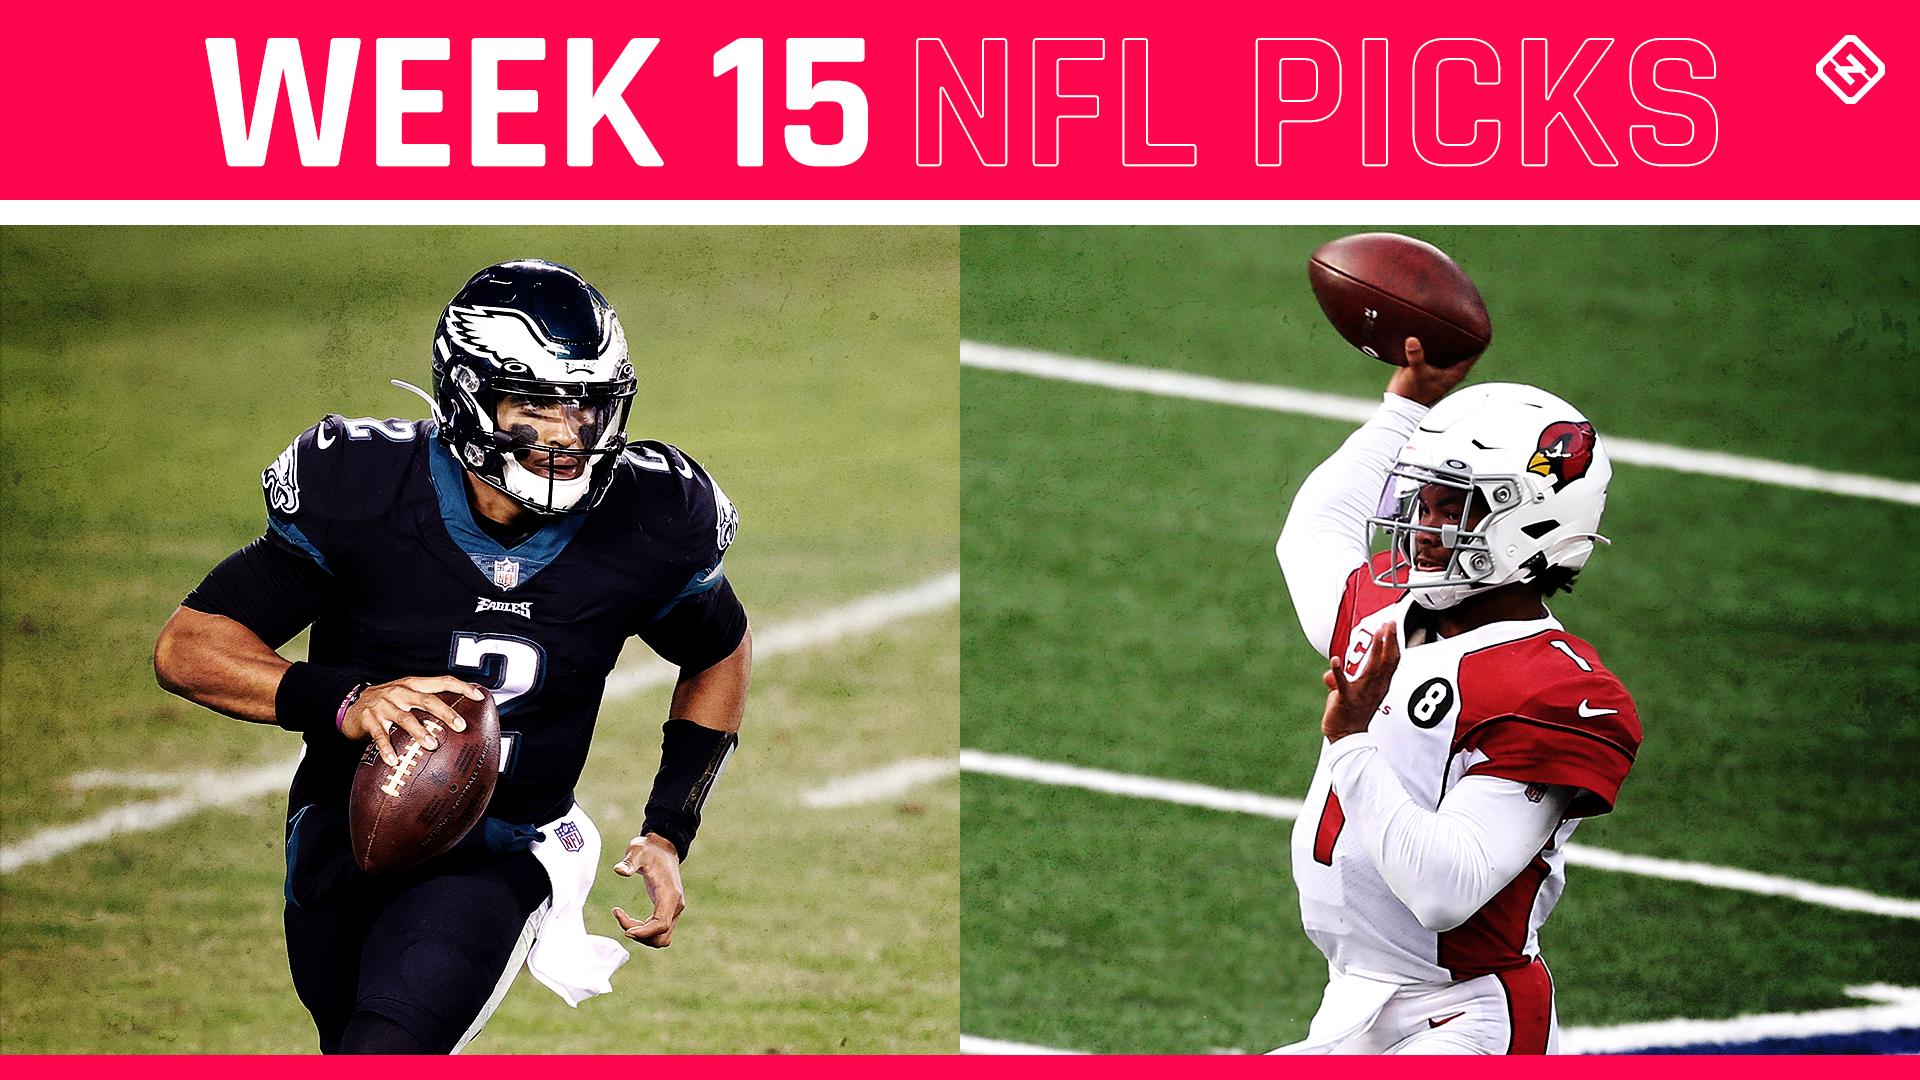 Nfl Expert Picks Predictions For Week 15 Straight Up Sporting News